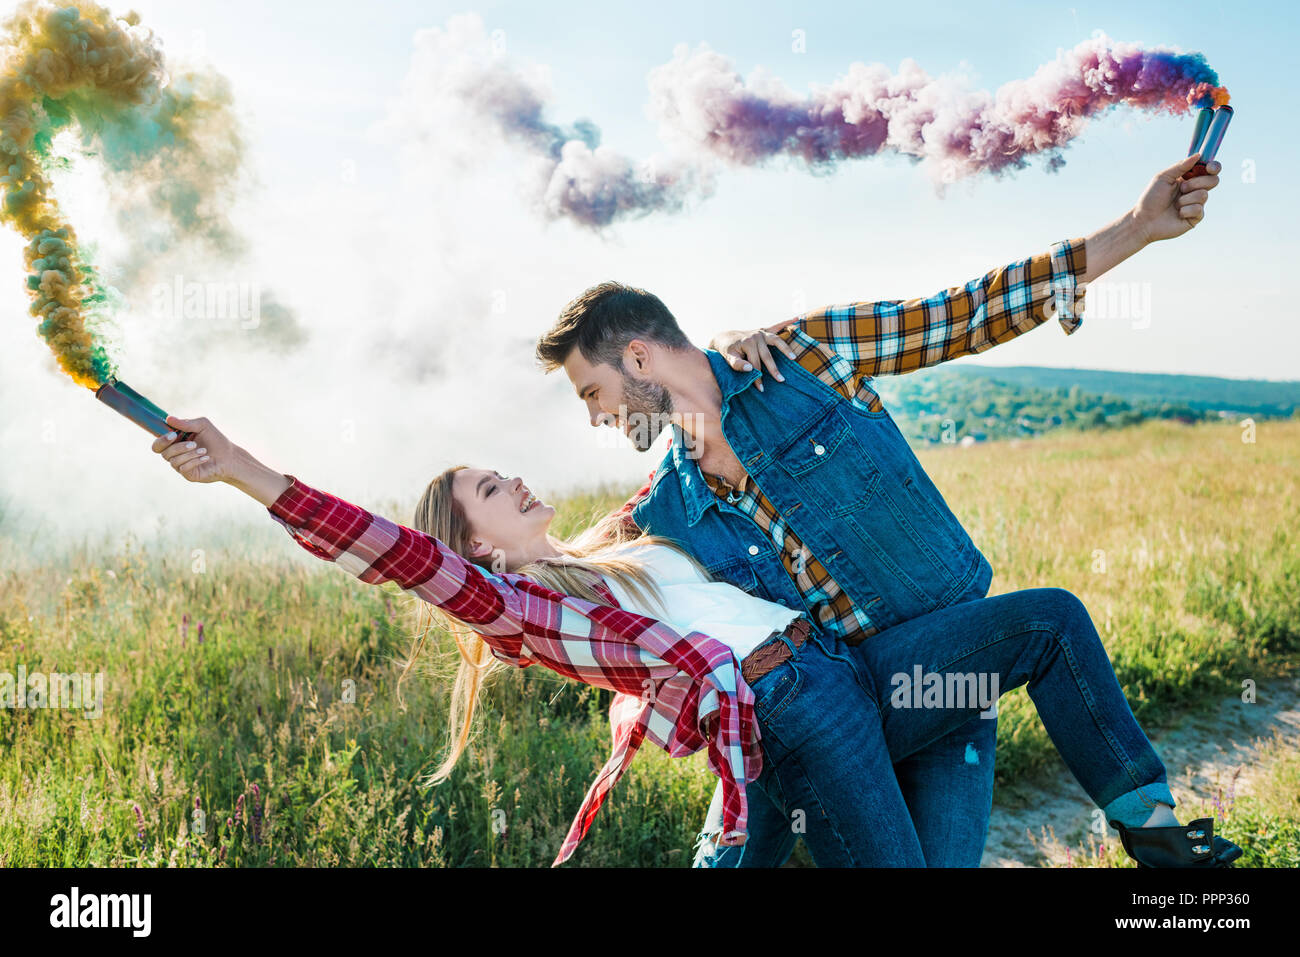 side view of man with colorful smoke bombs holding girlfriend back in rural field - Stock Image